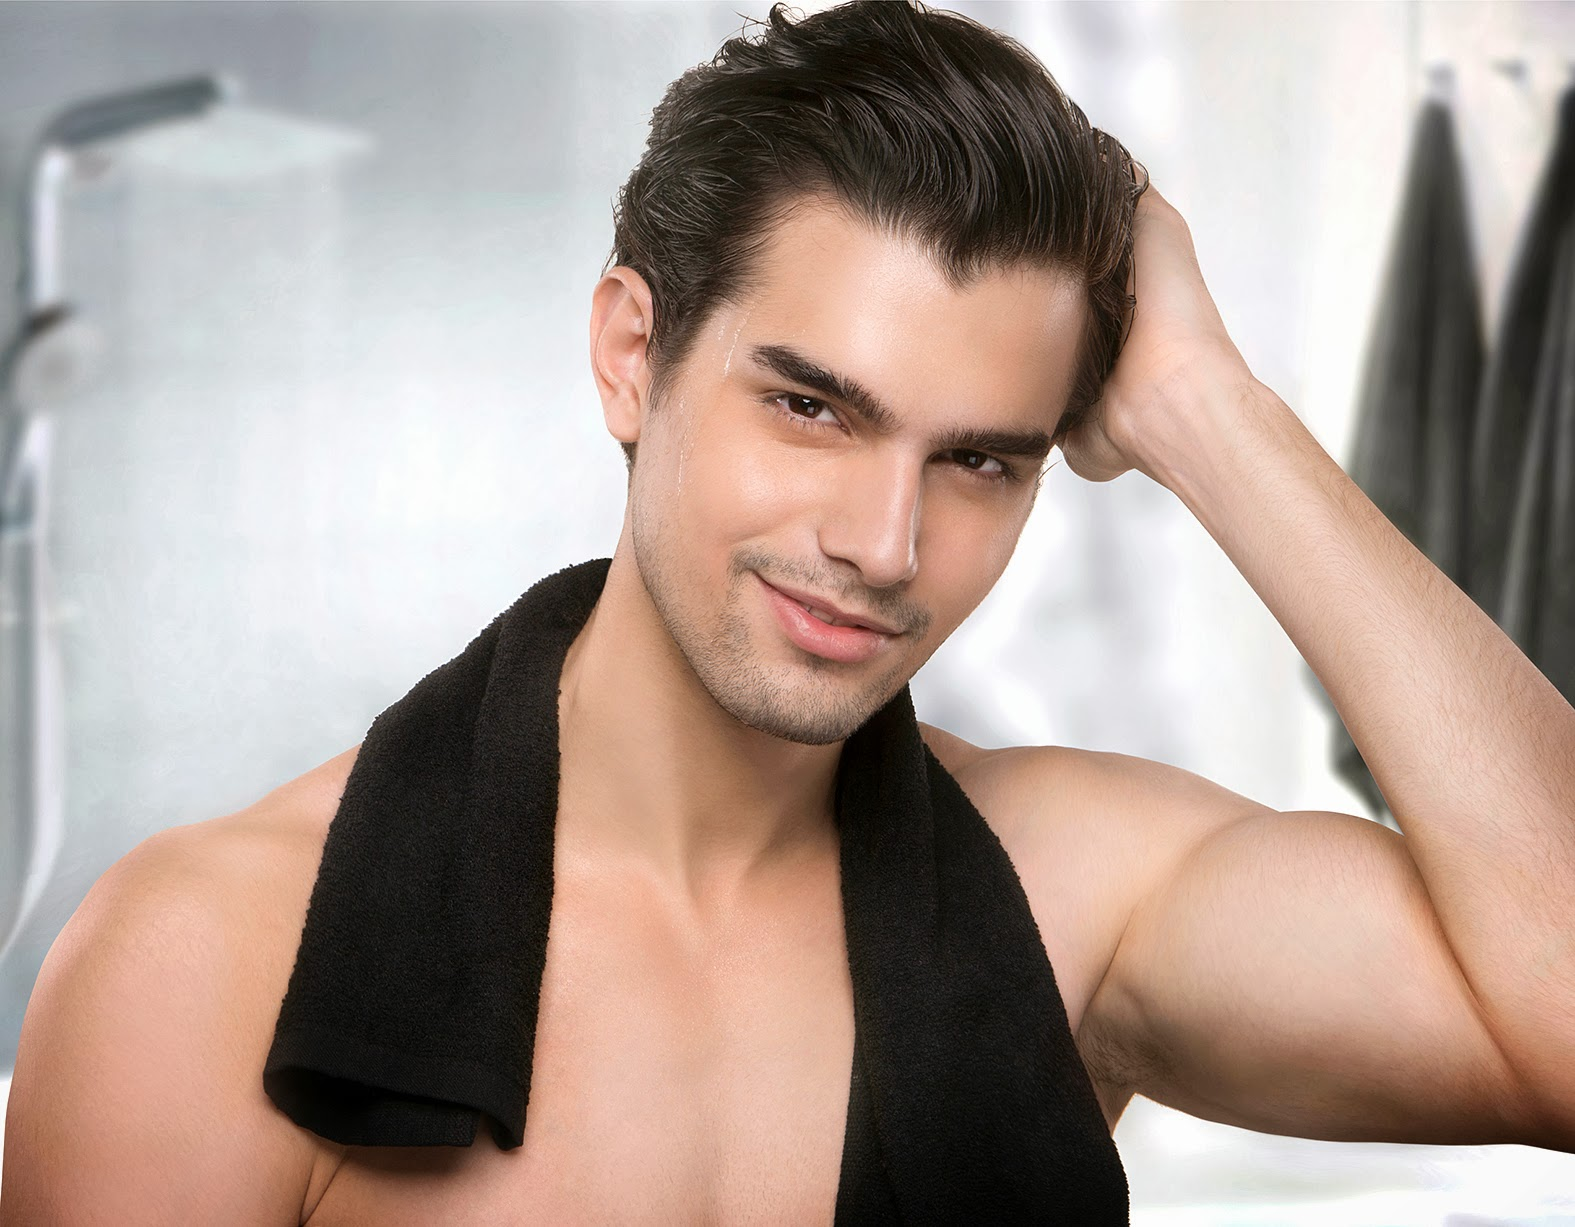 beauty men David yi founded website very good light, a men's beauty and grooming destination.